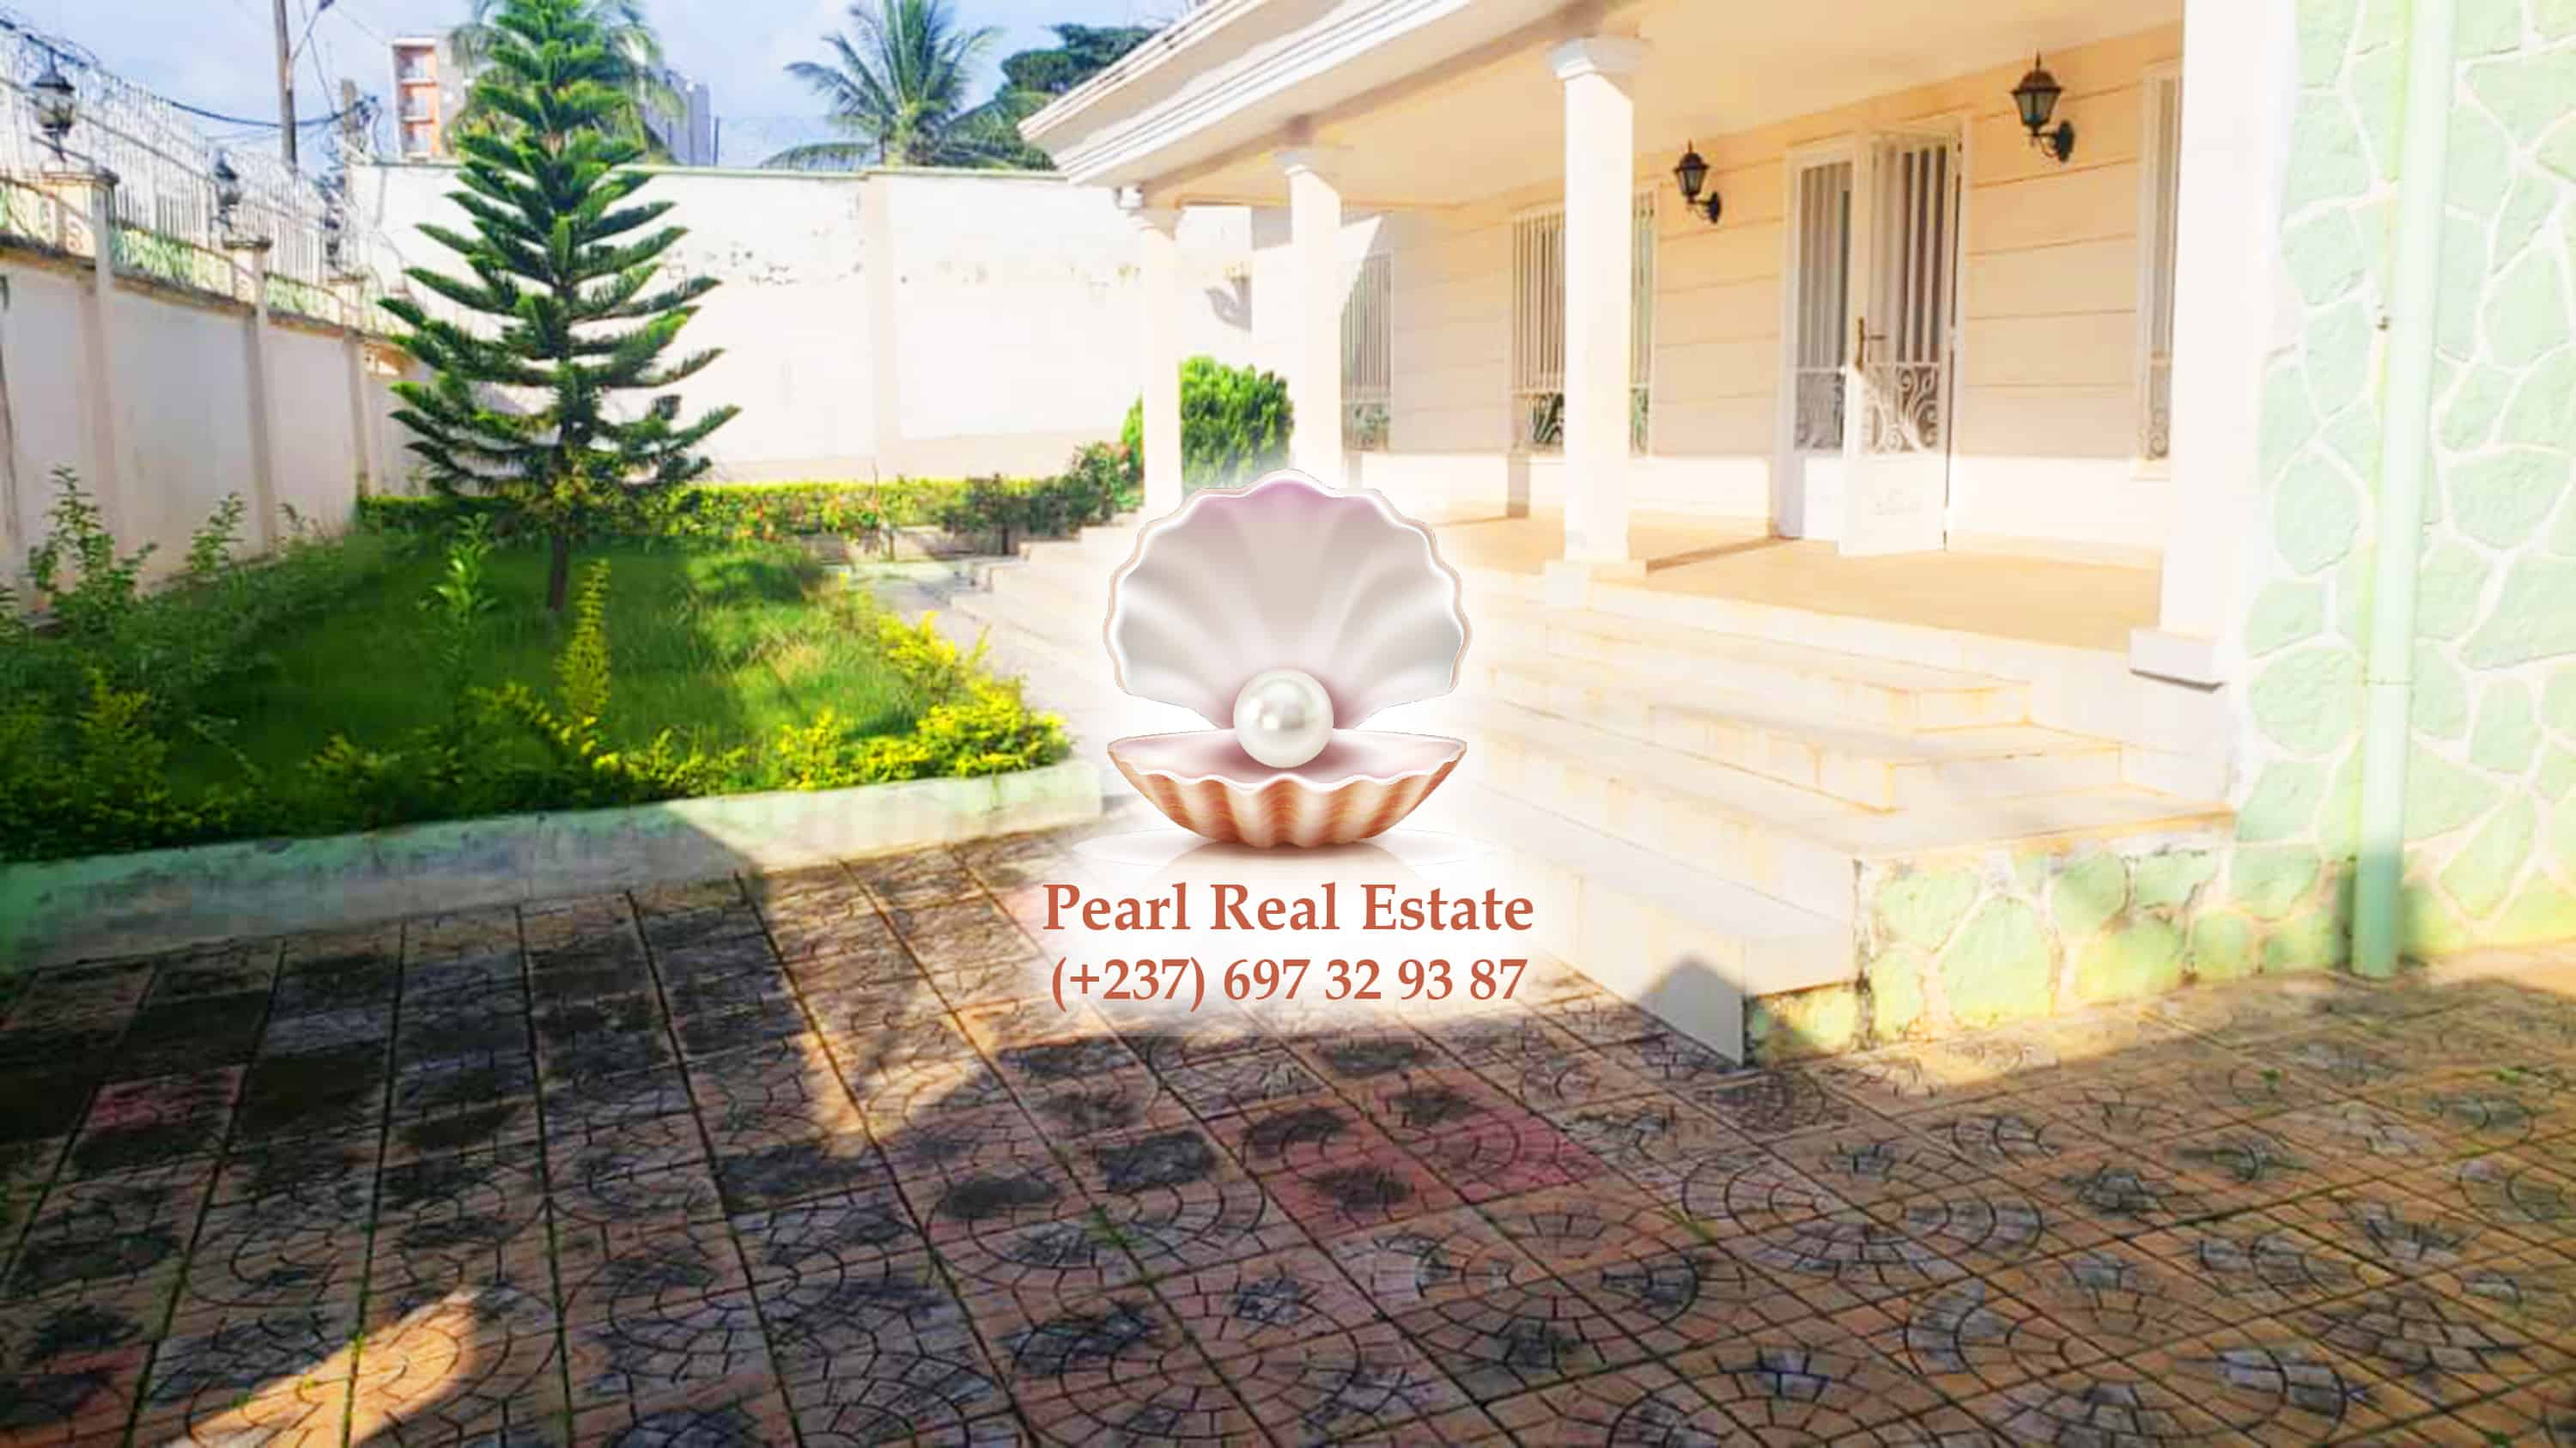 House (Villa) to rent - Yaoundé, Abome, Bastos - 1 living room(s), 4 bedroom(s), 4 bathroom(s) - 1 500 000 FCFA / month